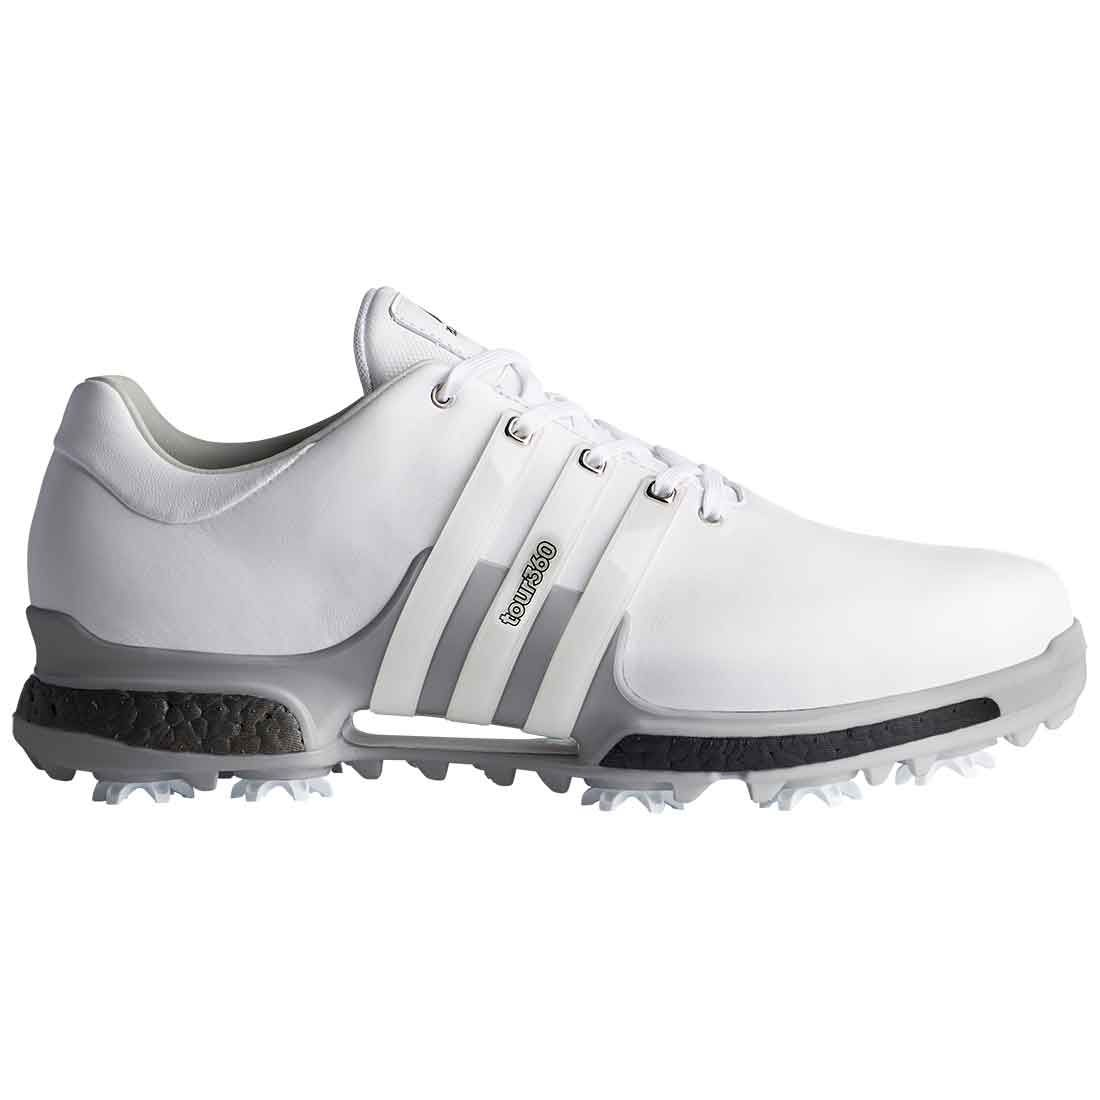 Buy Adidas Tour360 Boost 2 0 Golf Shoes White Trace Grey Golf Discount